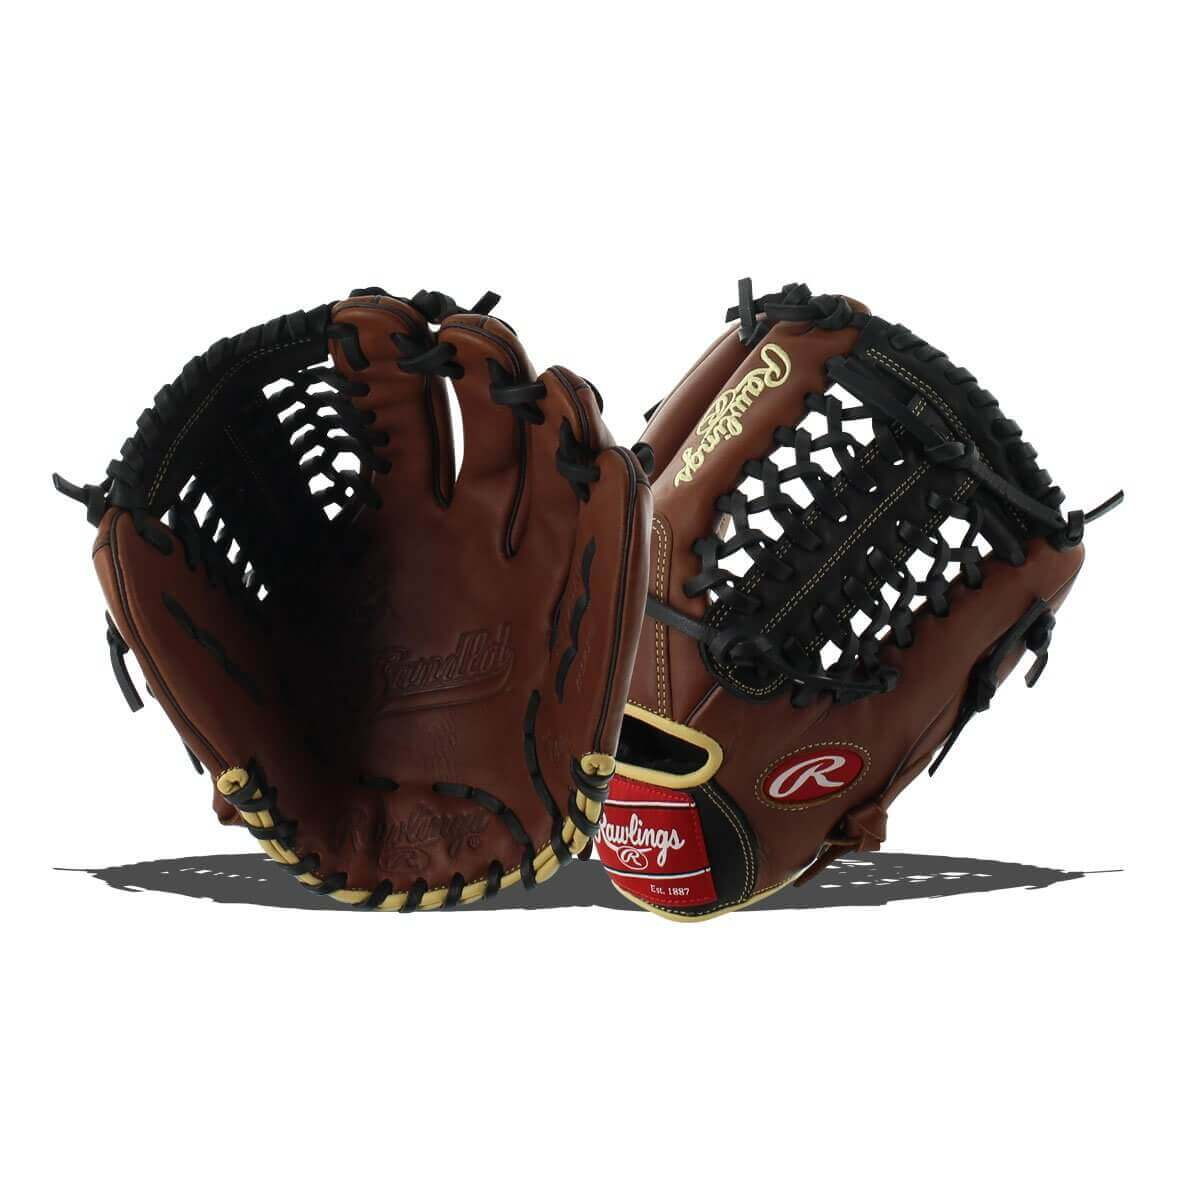 Rawlings Sandlot Baseball Glove Modified Trapeze Web